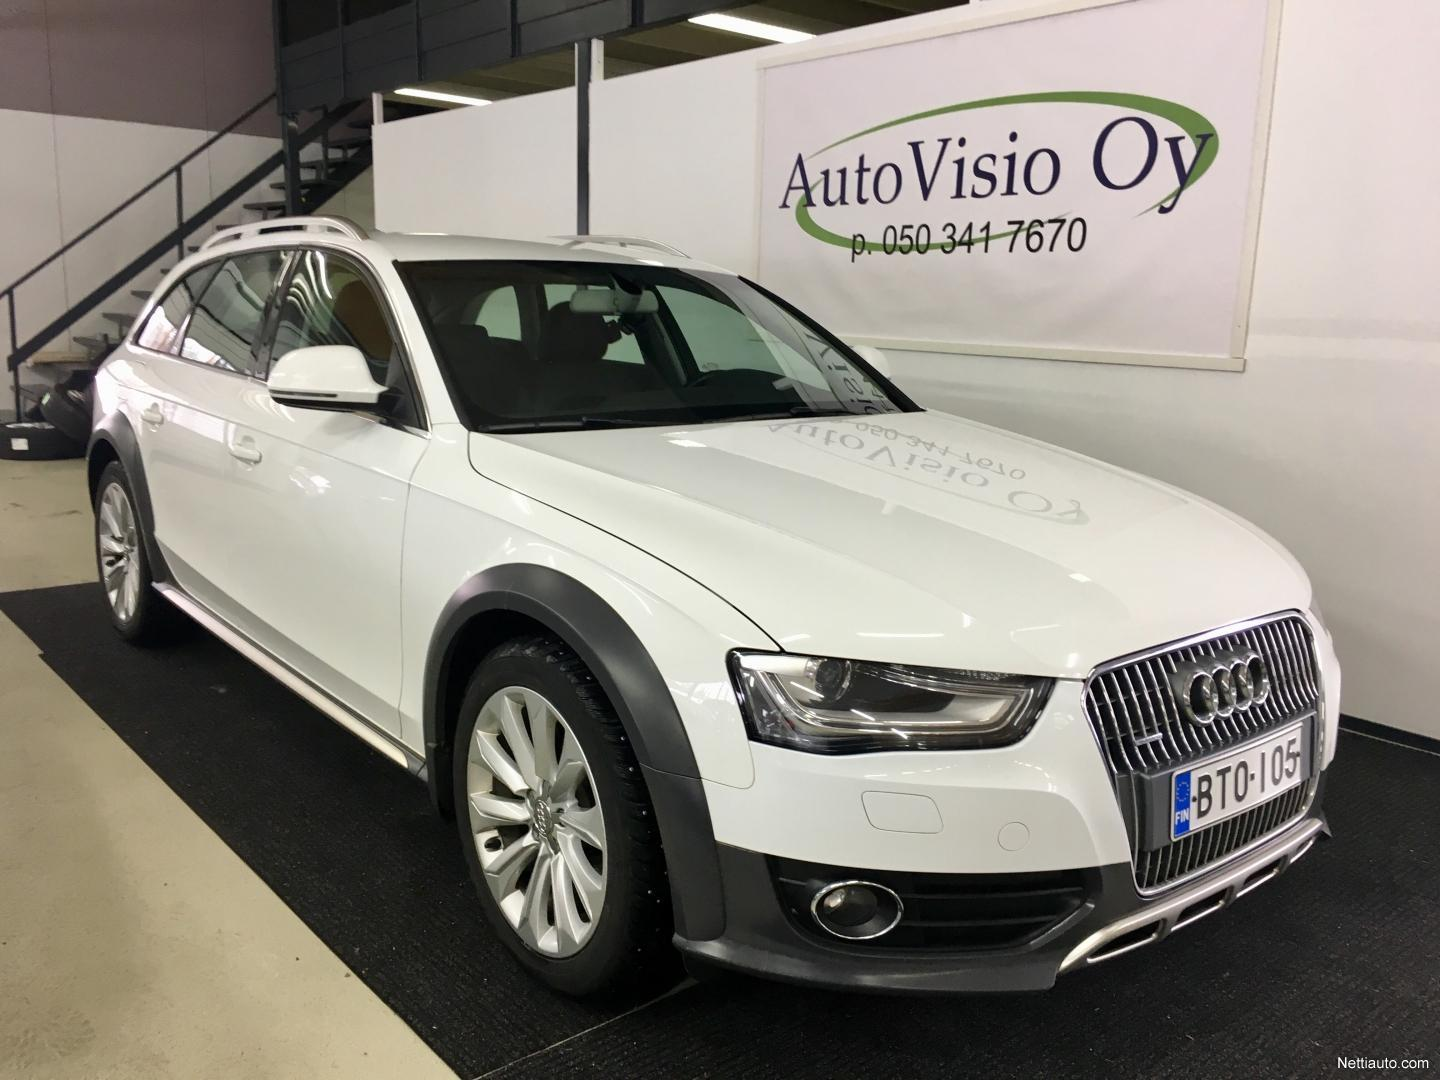 hight resolution of enlarge image audi a4 allroad